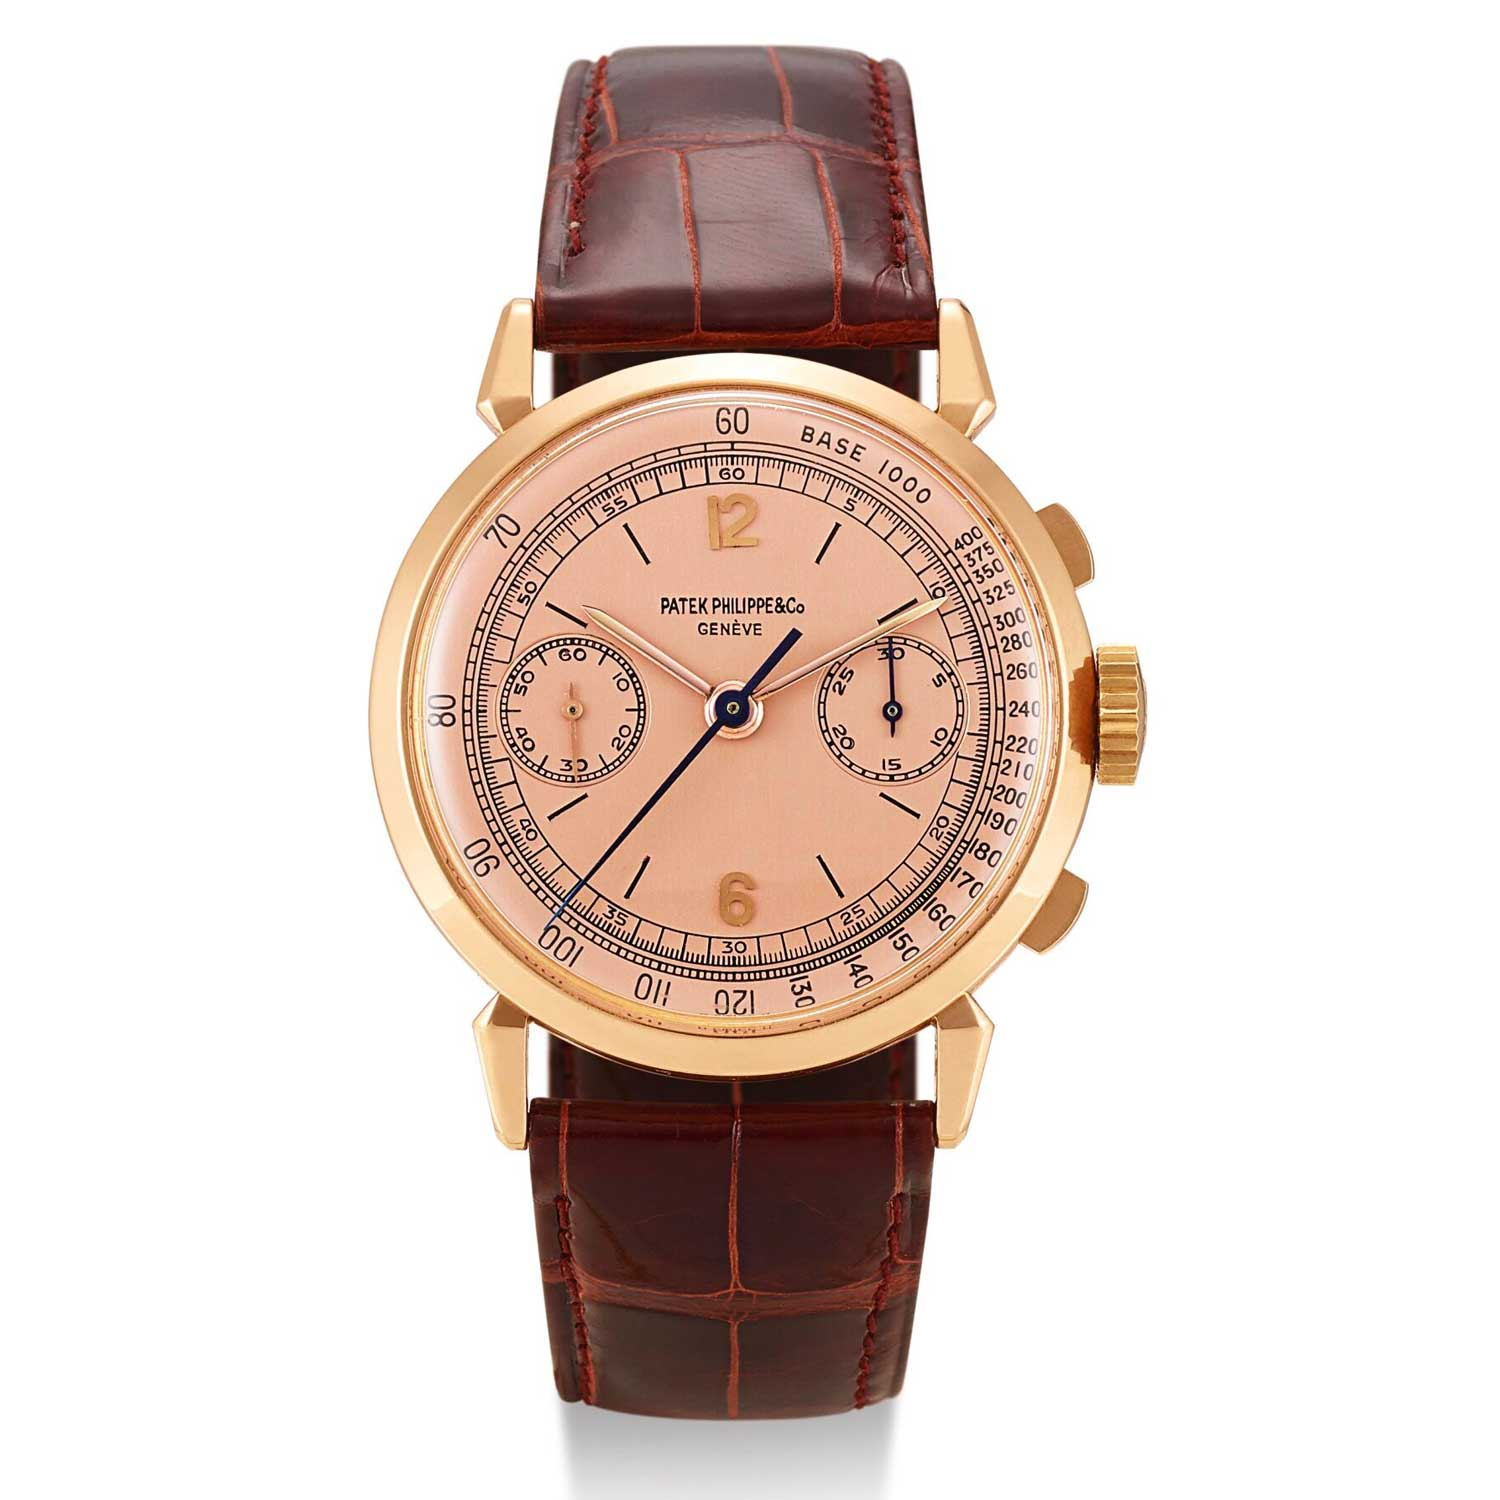 1947 Patek Philippe ref. 1579 pink gold chronograph with Roman numerals and pink gold dial (Image: Sothebys.com)